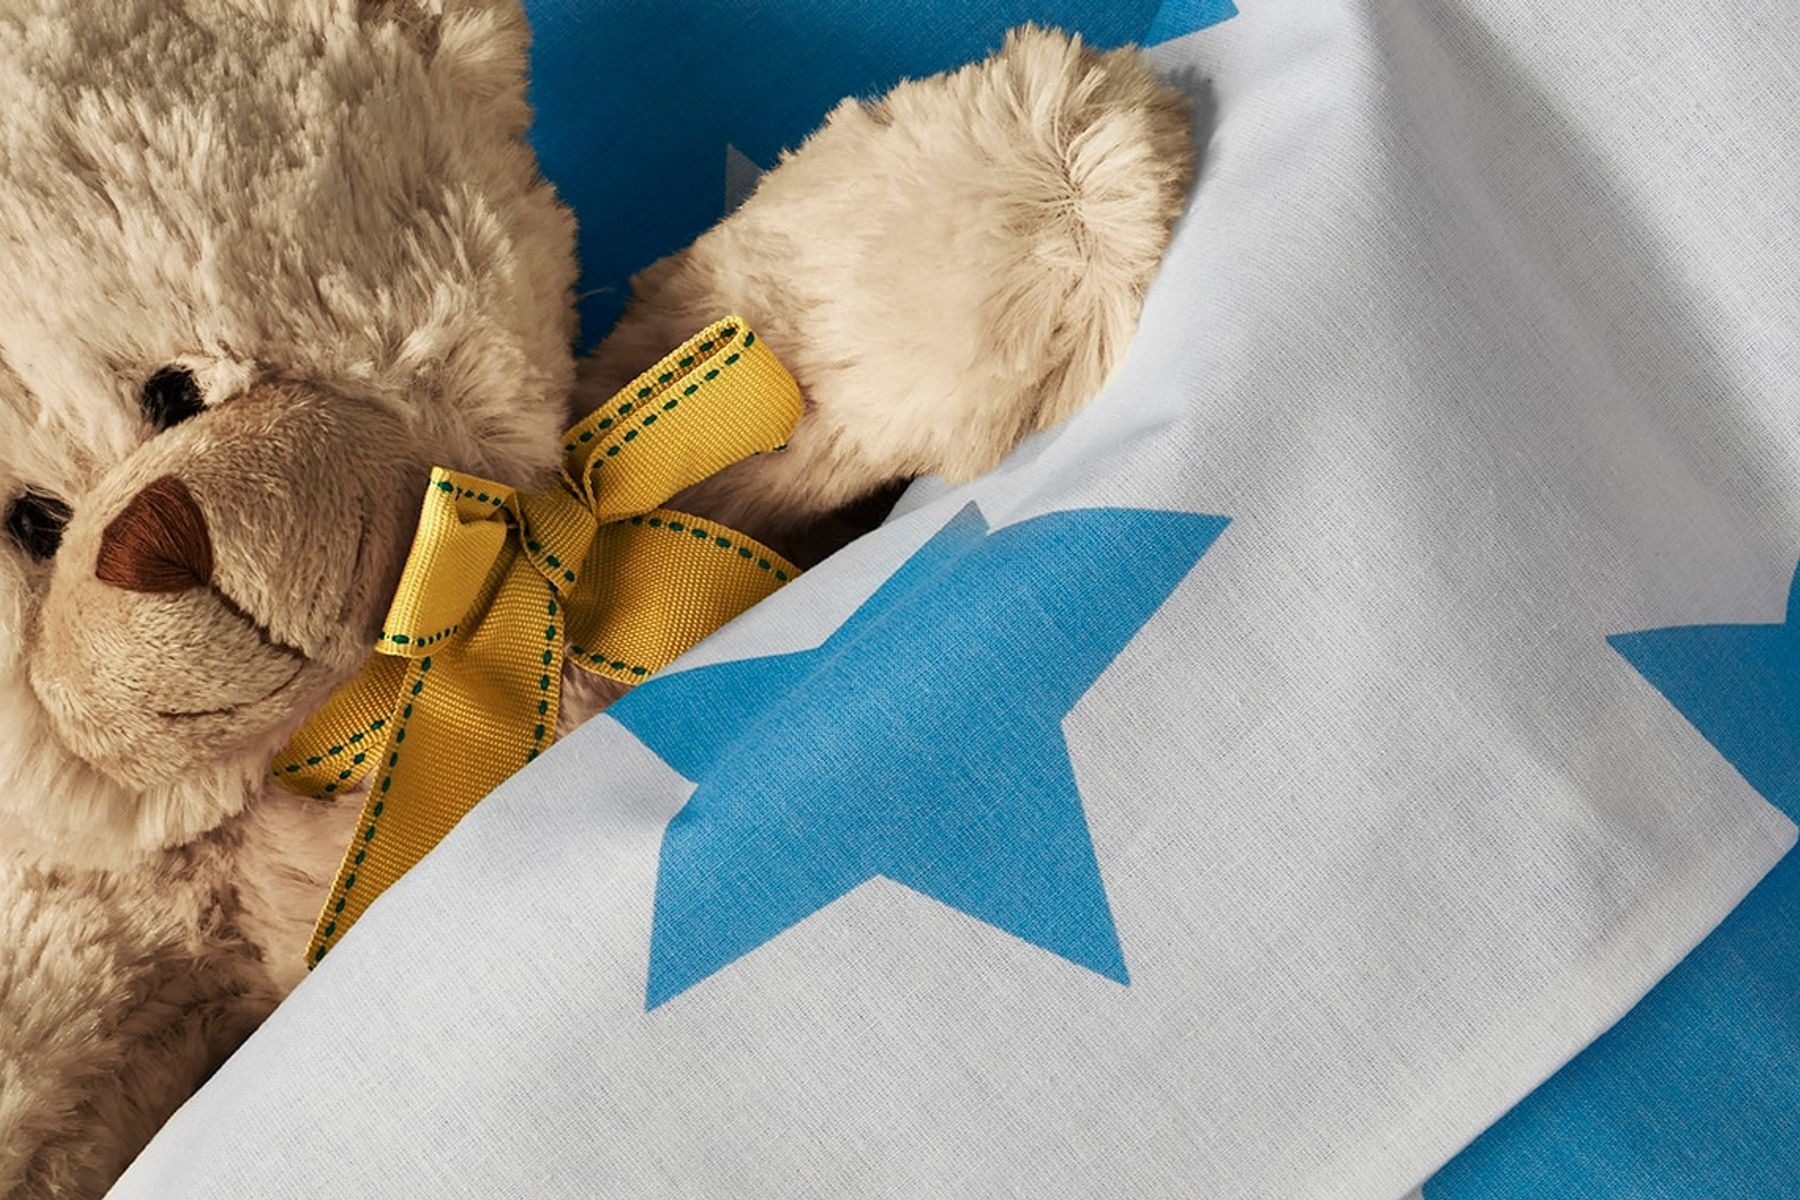 How to Clean Your Child's Teddy Bear